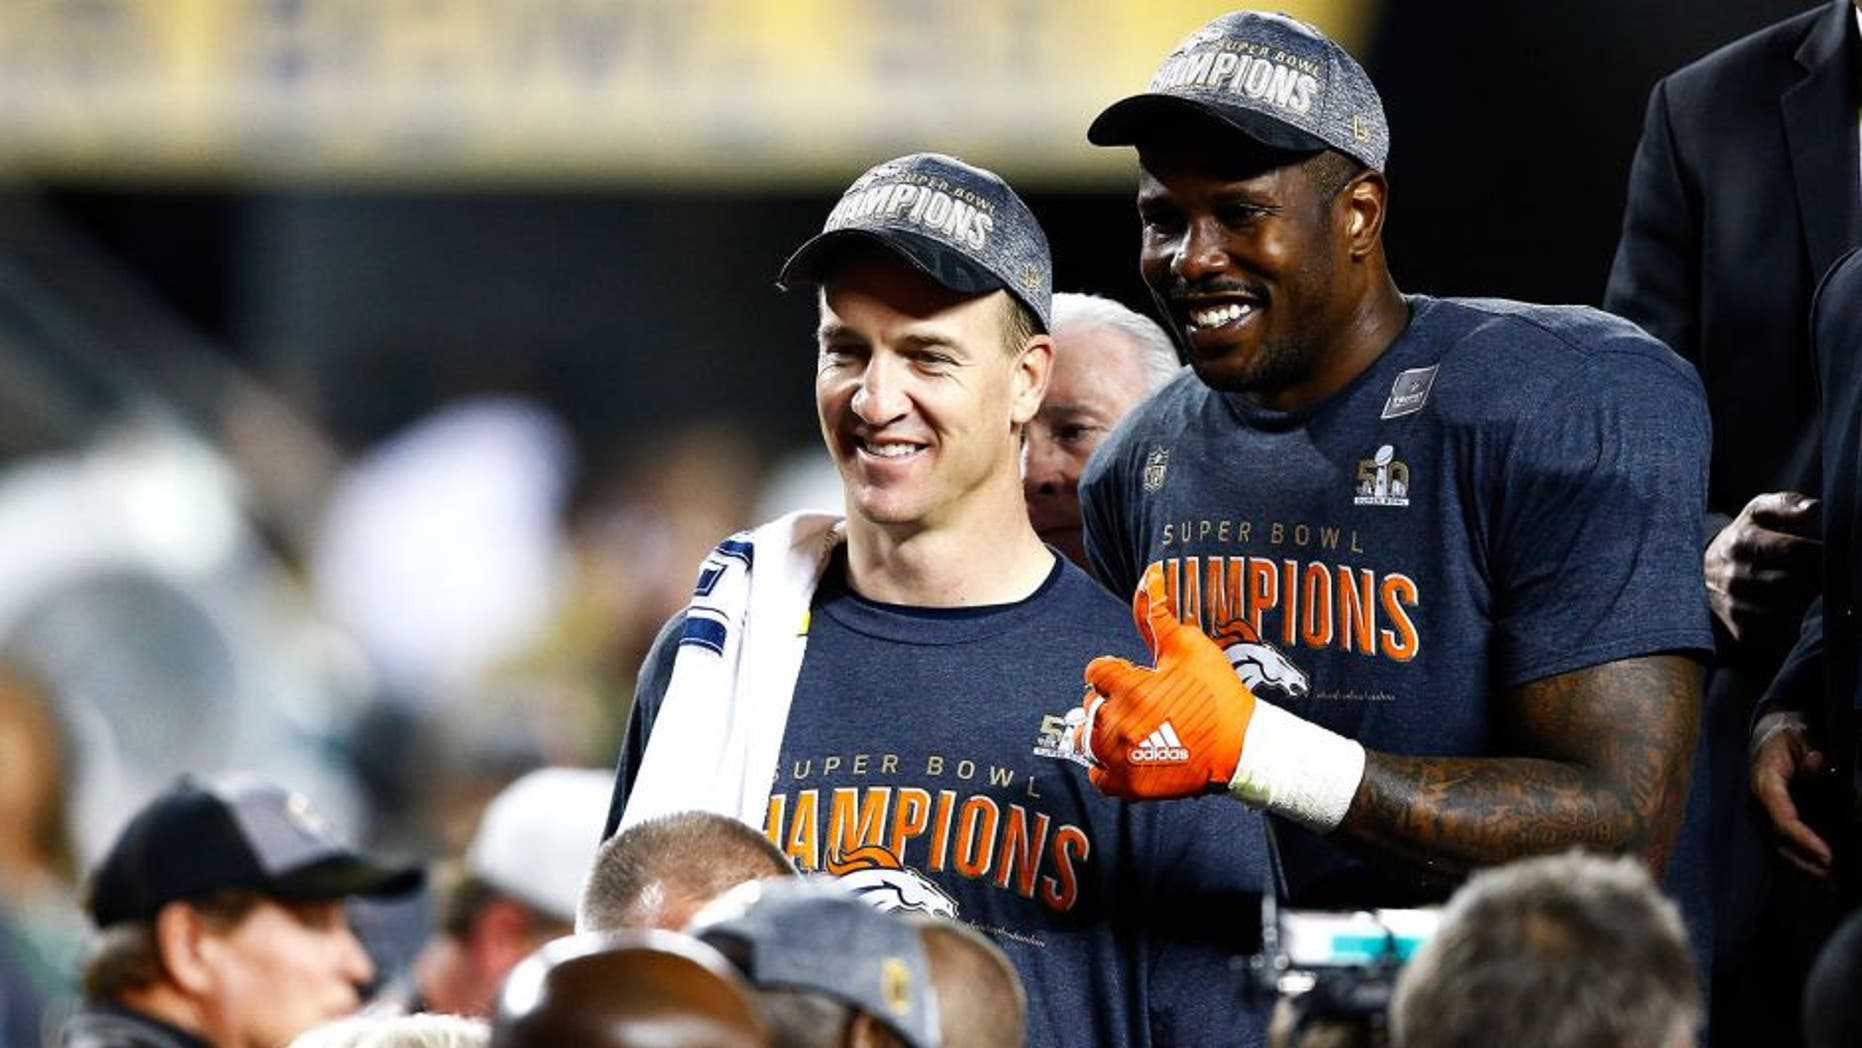 SANTA CLARA, CA - FEBRUARY 07: Peyton Manning #18 and Von Miller #58 of the Denver Broncos celebrate after defeating the Carolina Panthers during Super Bowl 50 at Levi's Stadium on February 7, 2016 in Santa Clara, California. The Broncos defeated the Panthers 24-10. (Photo by Al Bello/Getty Images)